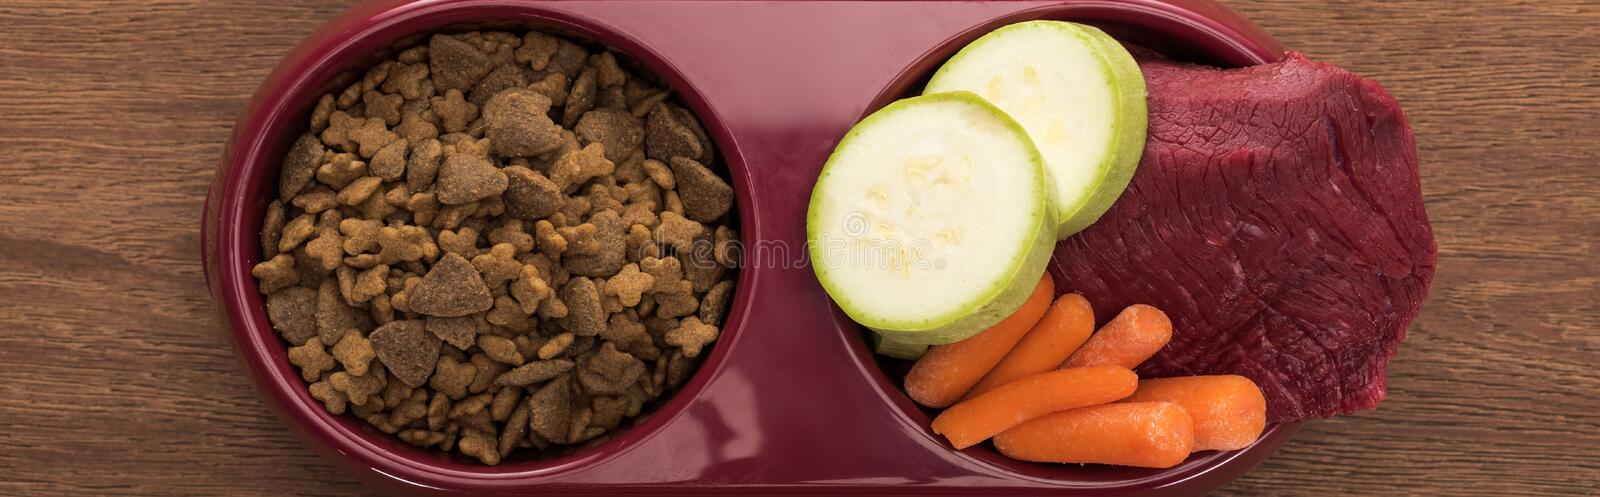 Top view of dry pet food and raw meat with vegetables in bowl on wooden table, panoramic shot. Top view of dry pet food and raw meat with vegetables in bowl on royalty free stock photo